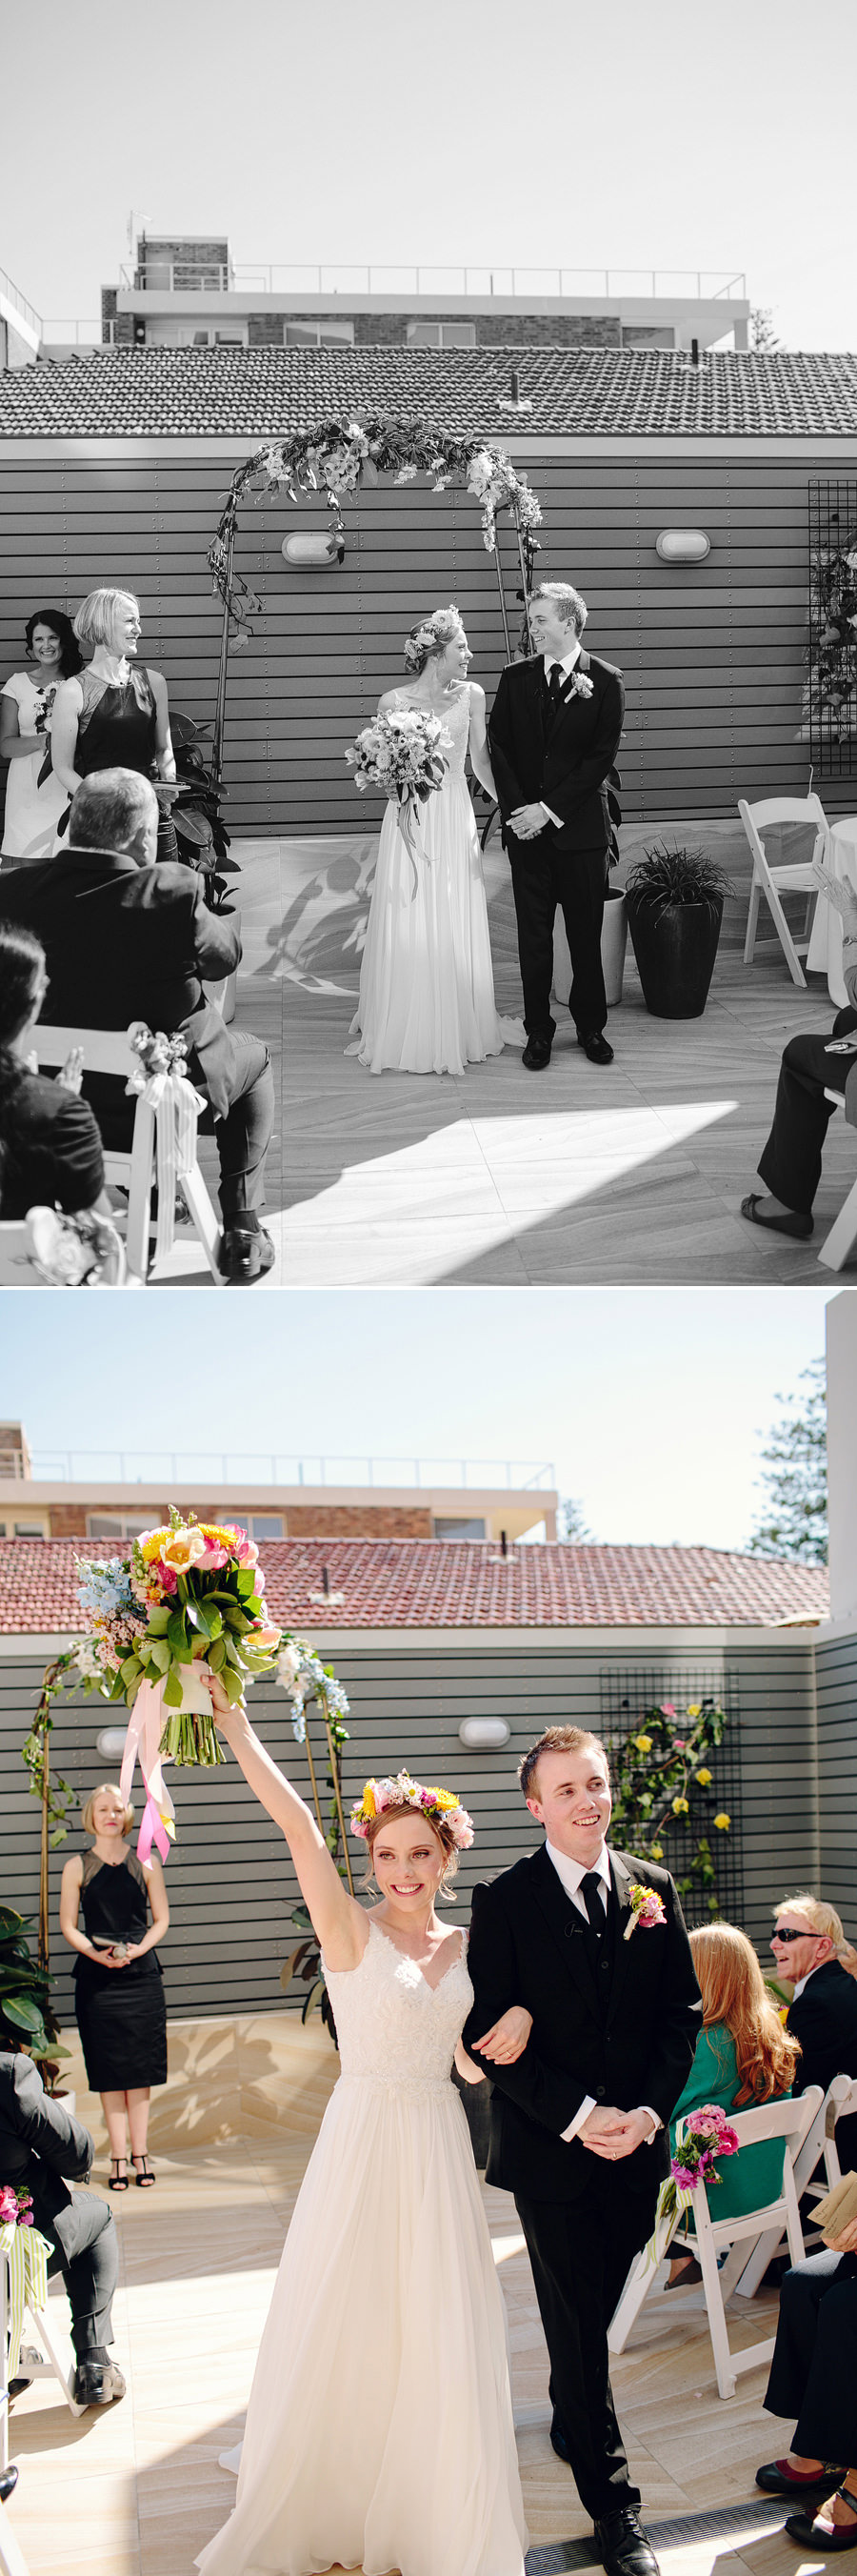 Little Manly Wedding Photography: Ceremony